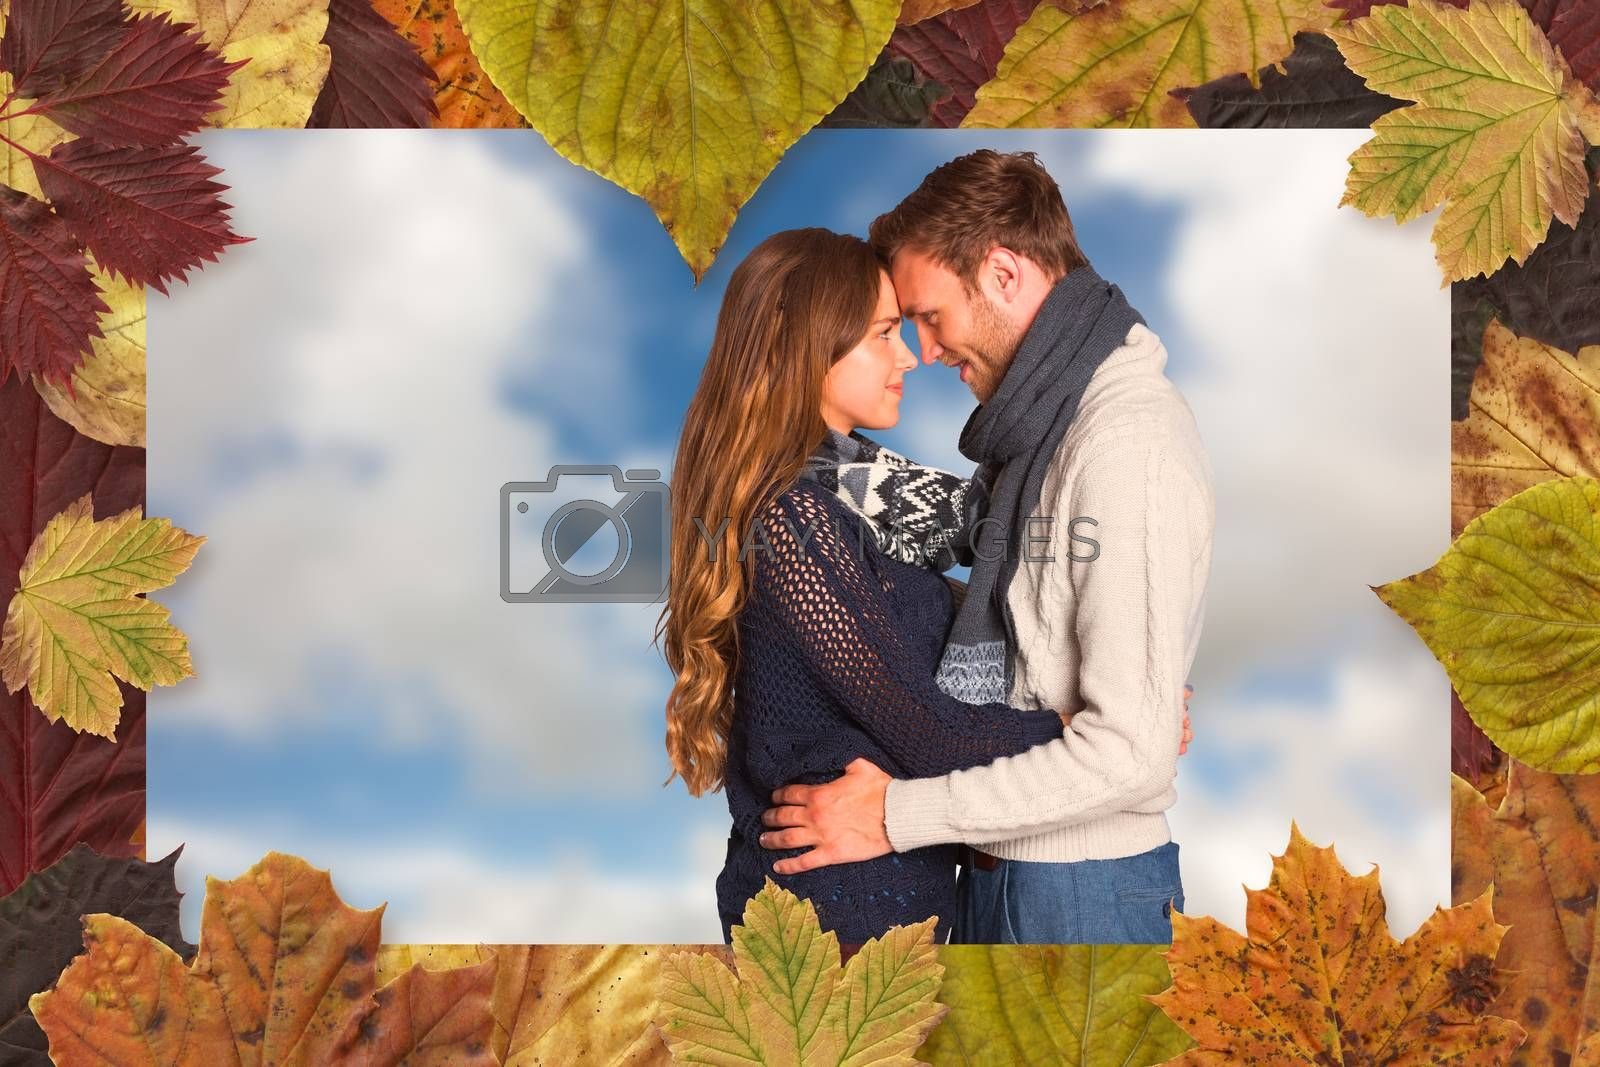 Side view of young couple embracing against blue sky with white clouds